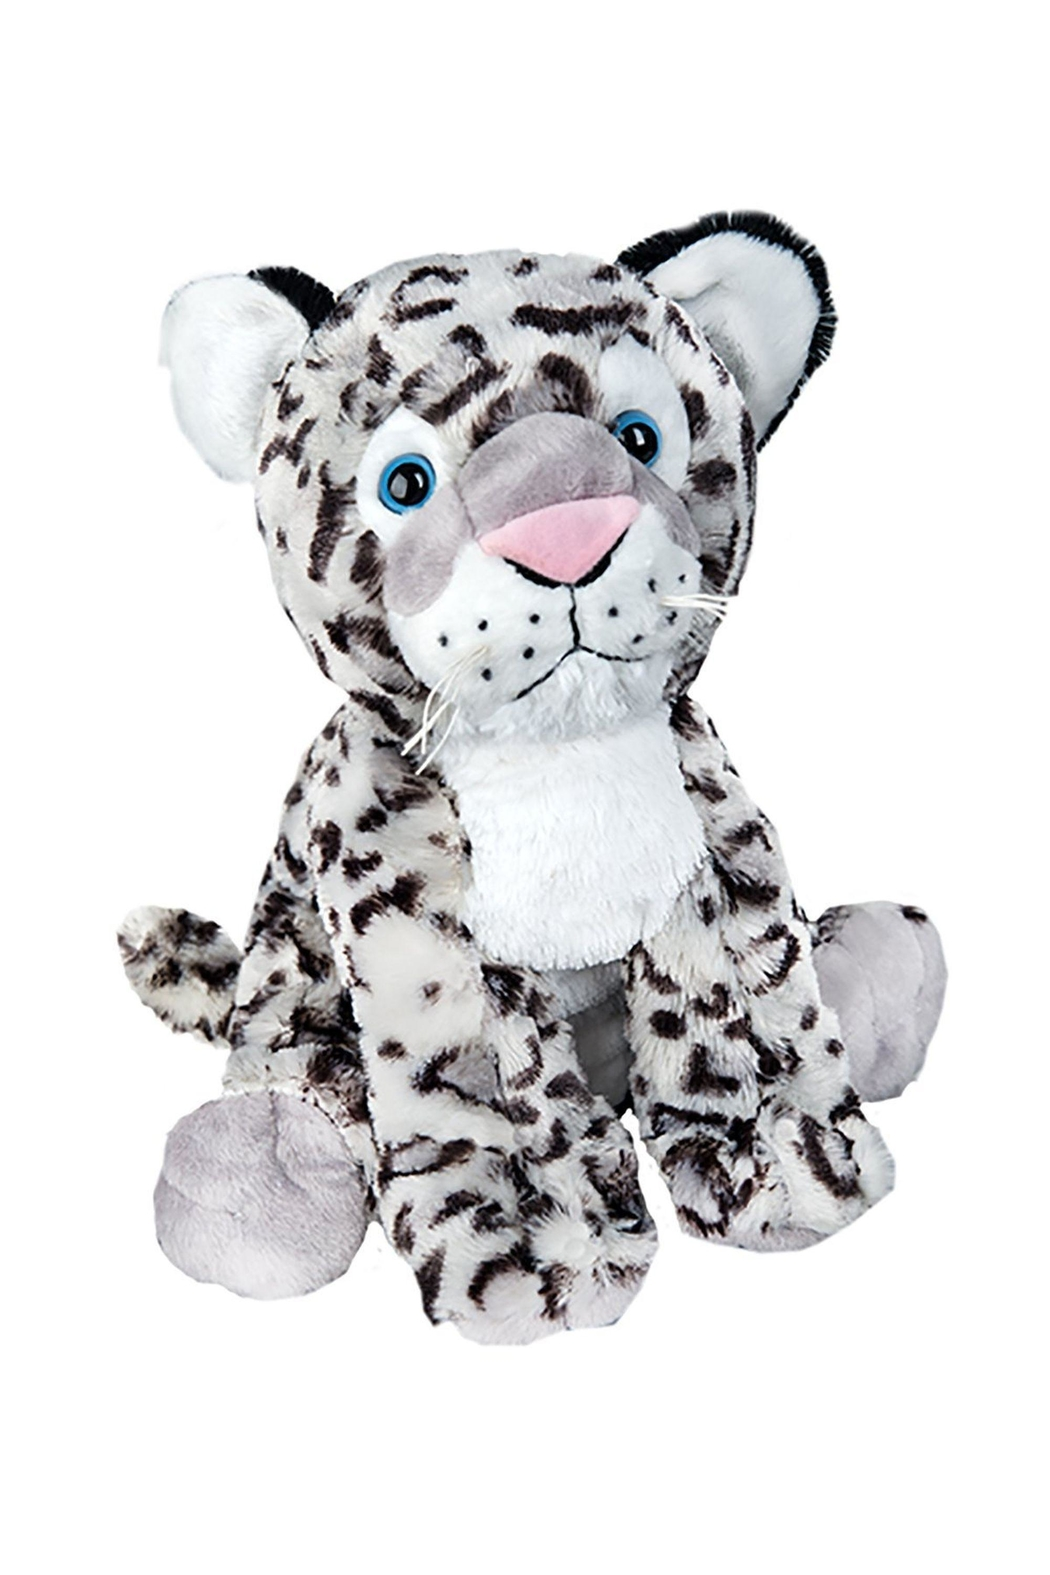 Teddy Mountain Snow Leopard From Nebraska By Teddy Bear Connection